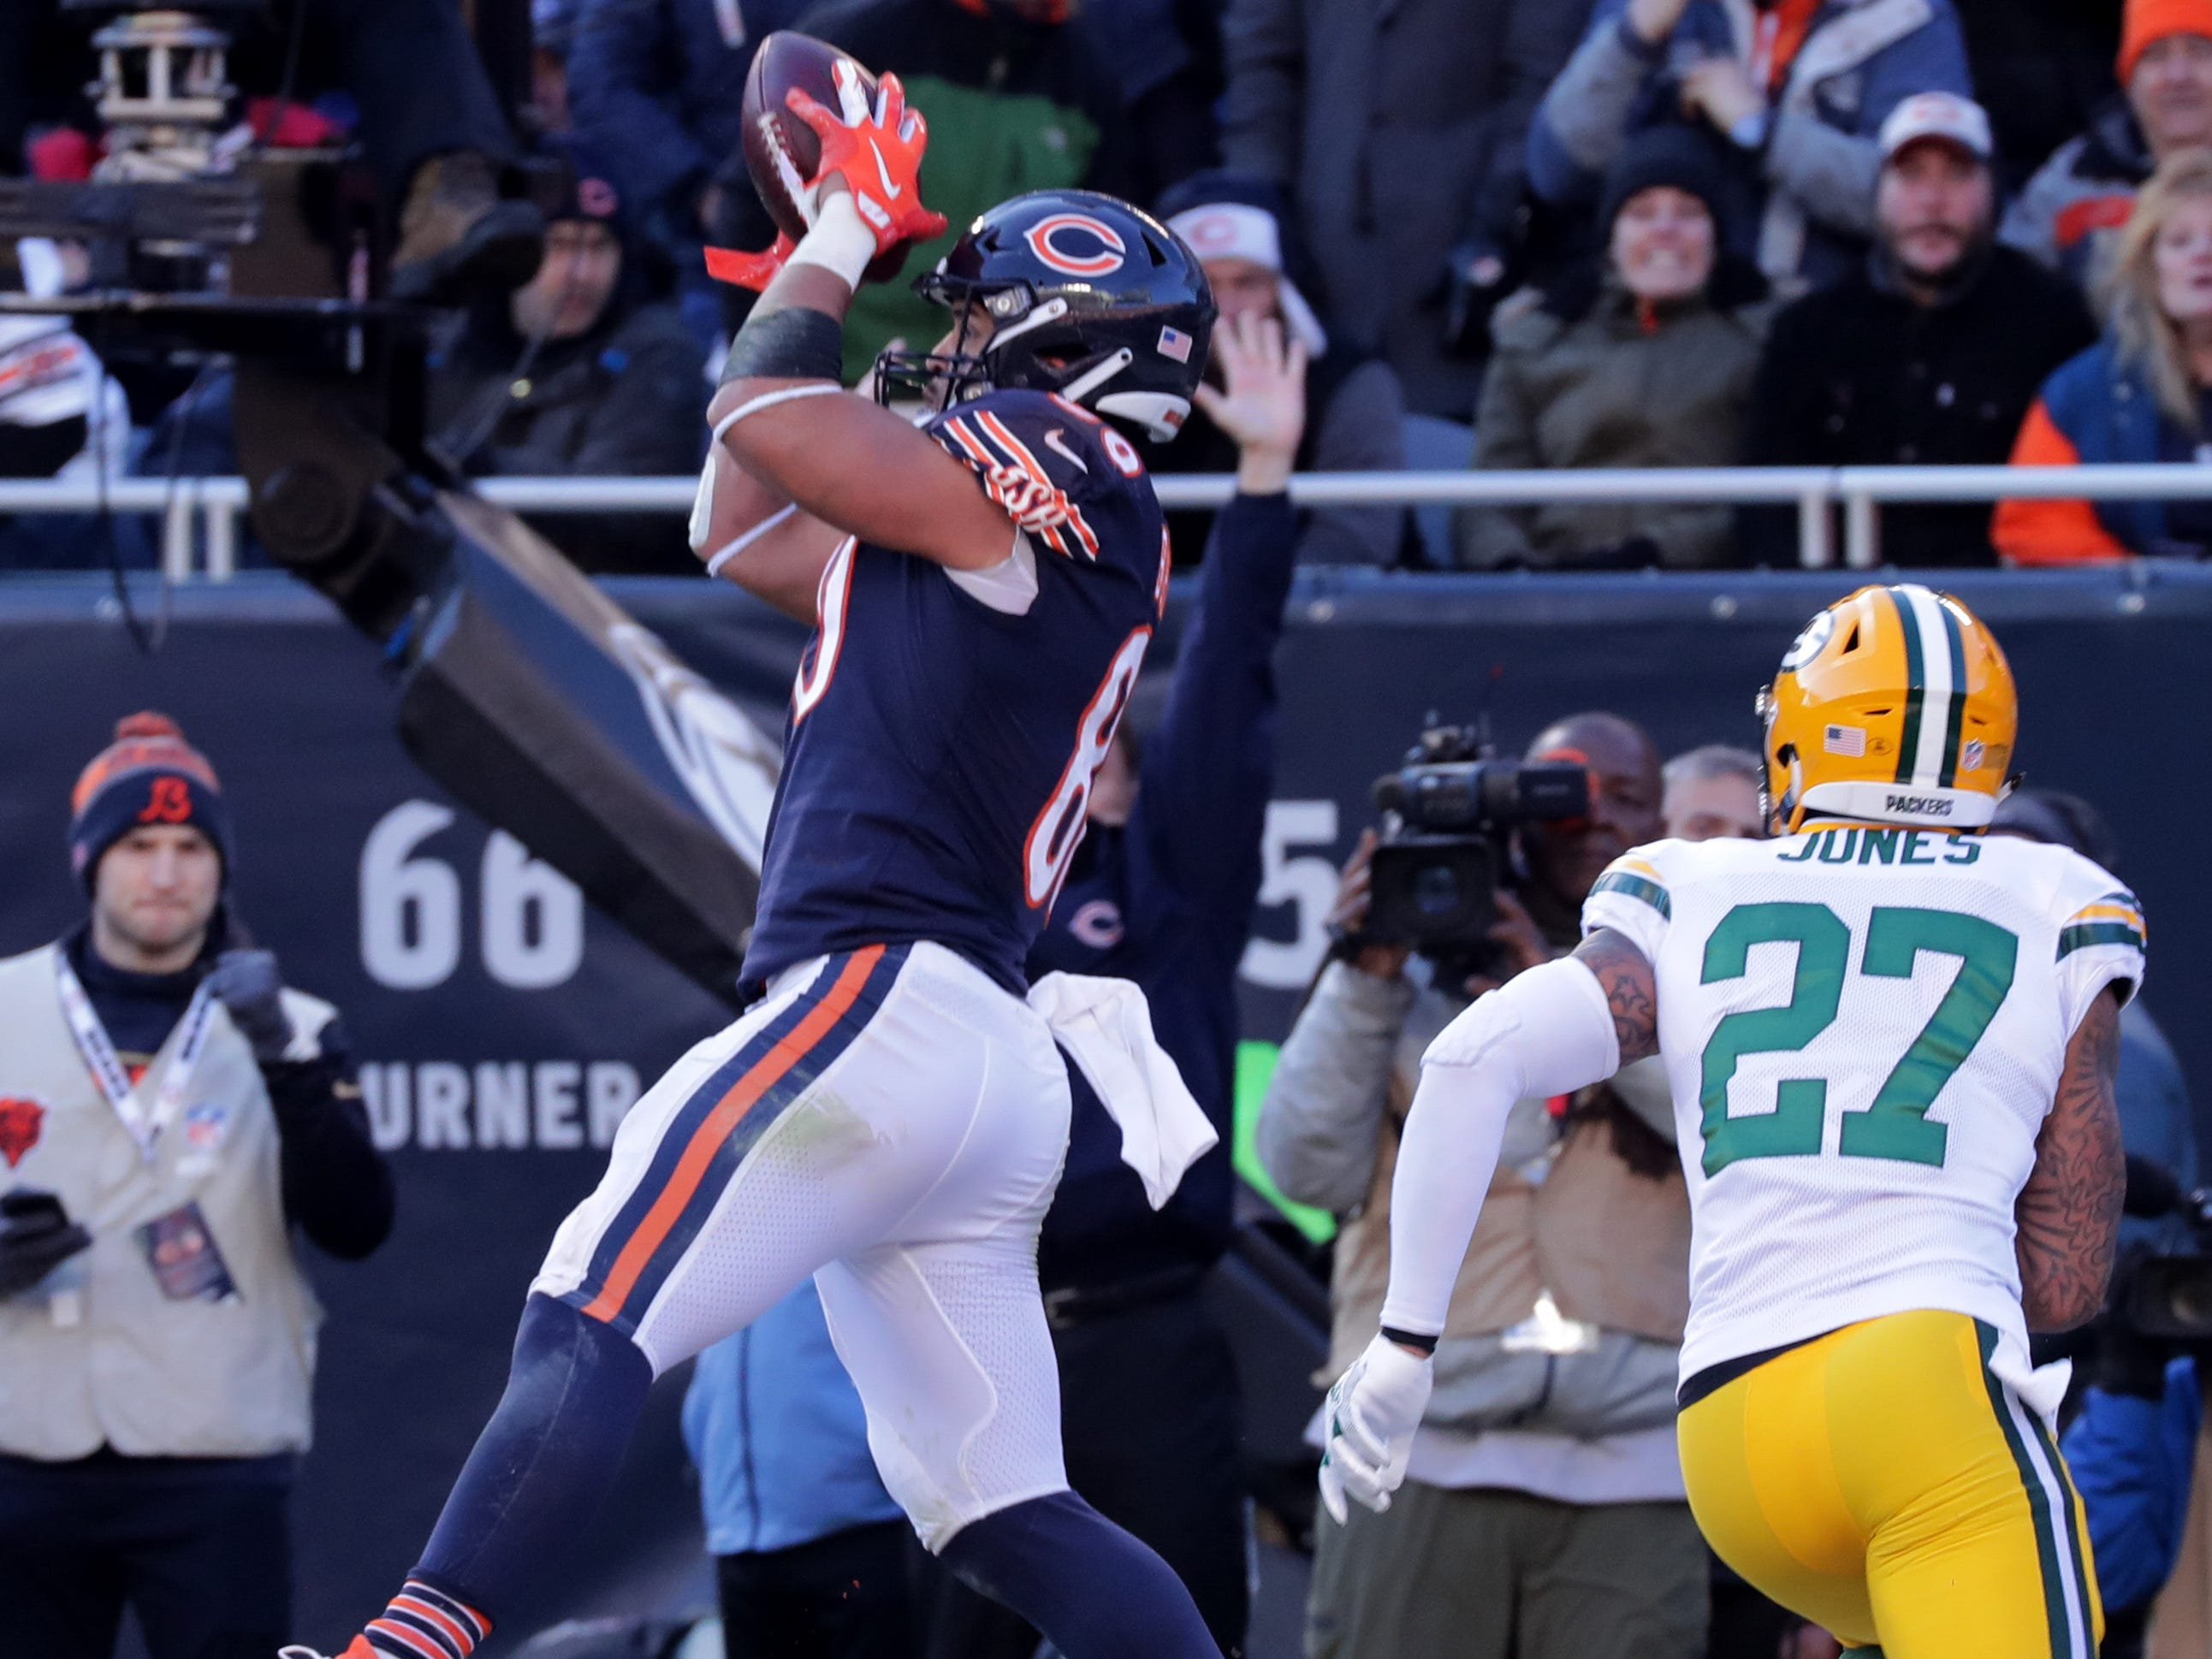 Chicago Bears tight end Trey Burton (80) scores a touchdown on 13-yard pass as Green Bay Packers defensive back Josh Jones (27) looks on duyrun the fourth  quarter of their game Sunday, December 25, 2018 at Soldier Field in Chicago, Ill. The Chicago Bears beat the Green Bay Packers 24-17.  MARK HOFFMAN/MILWAUKEE JOURNAL SENTINEL